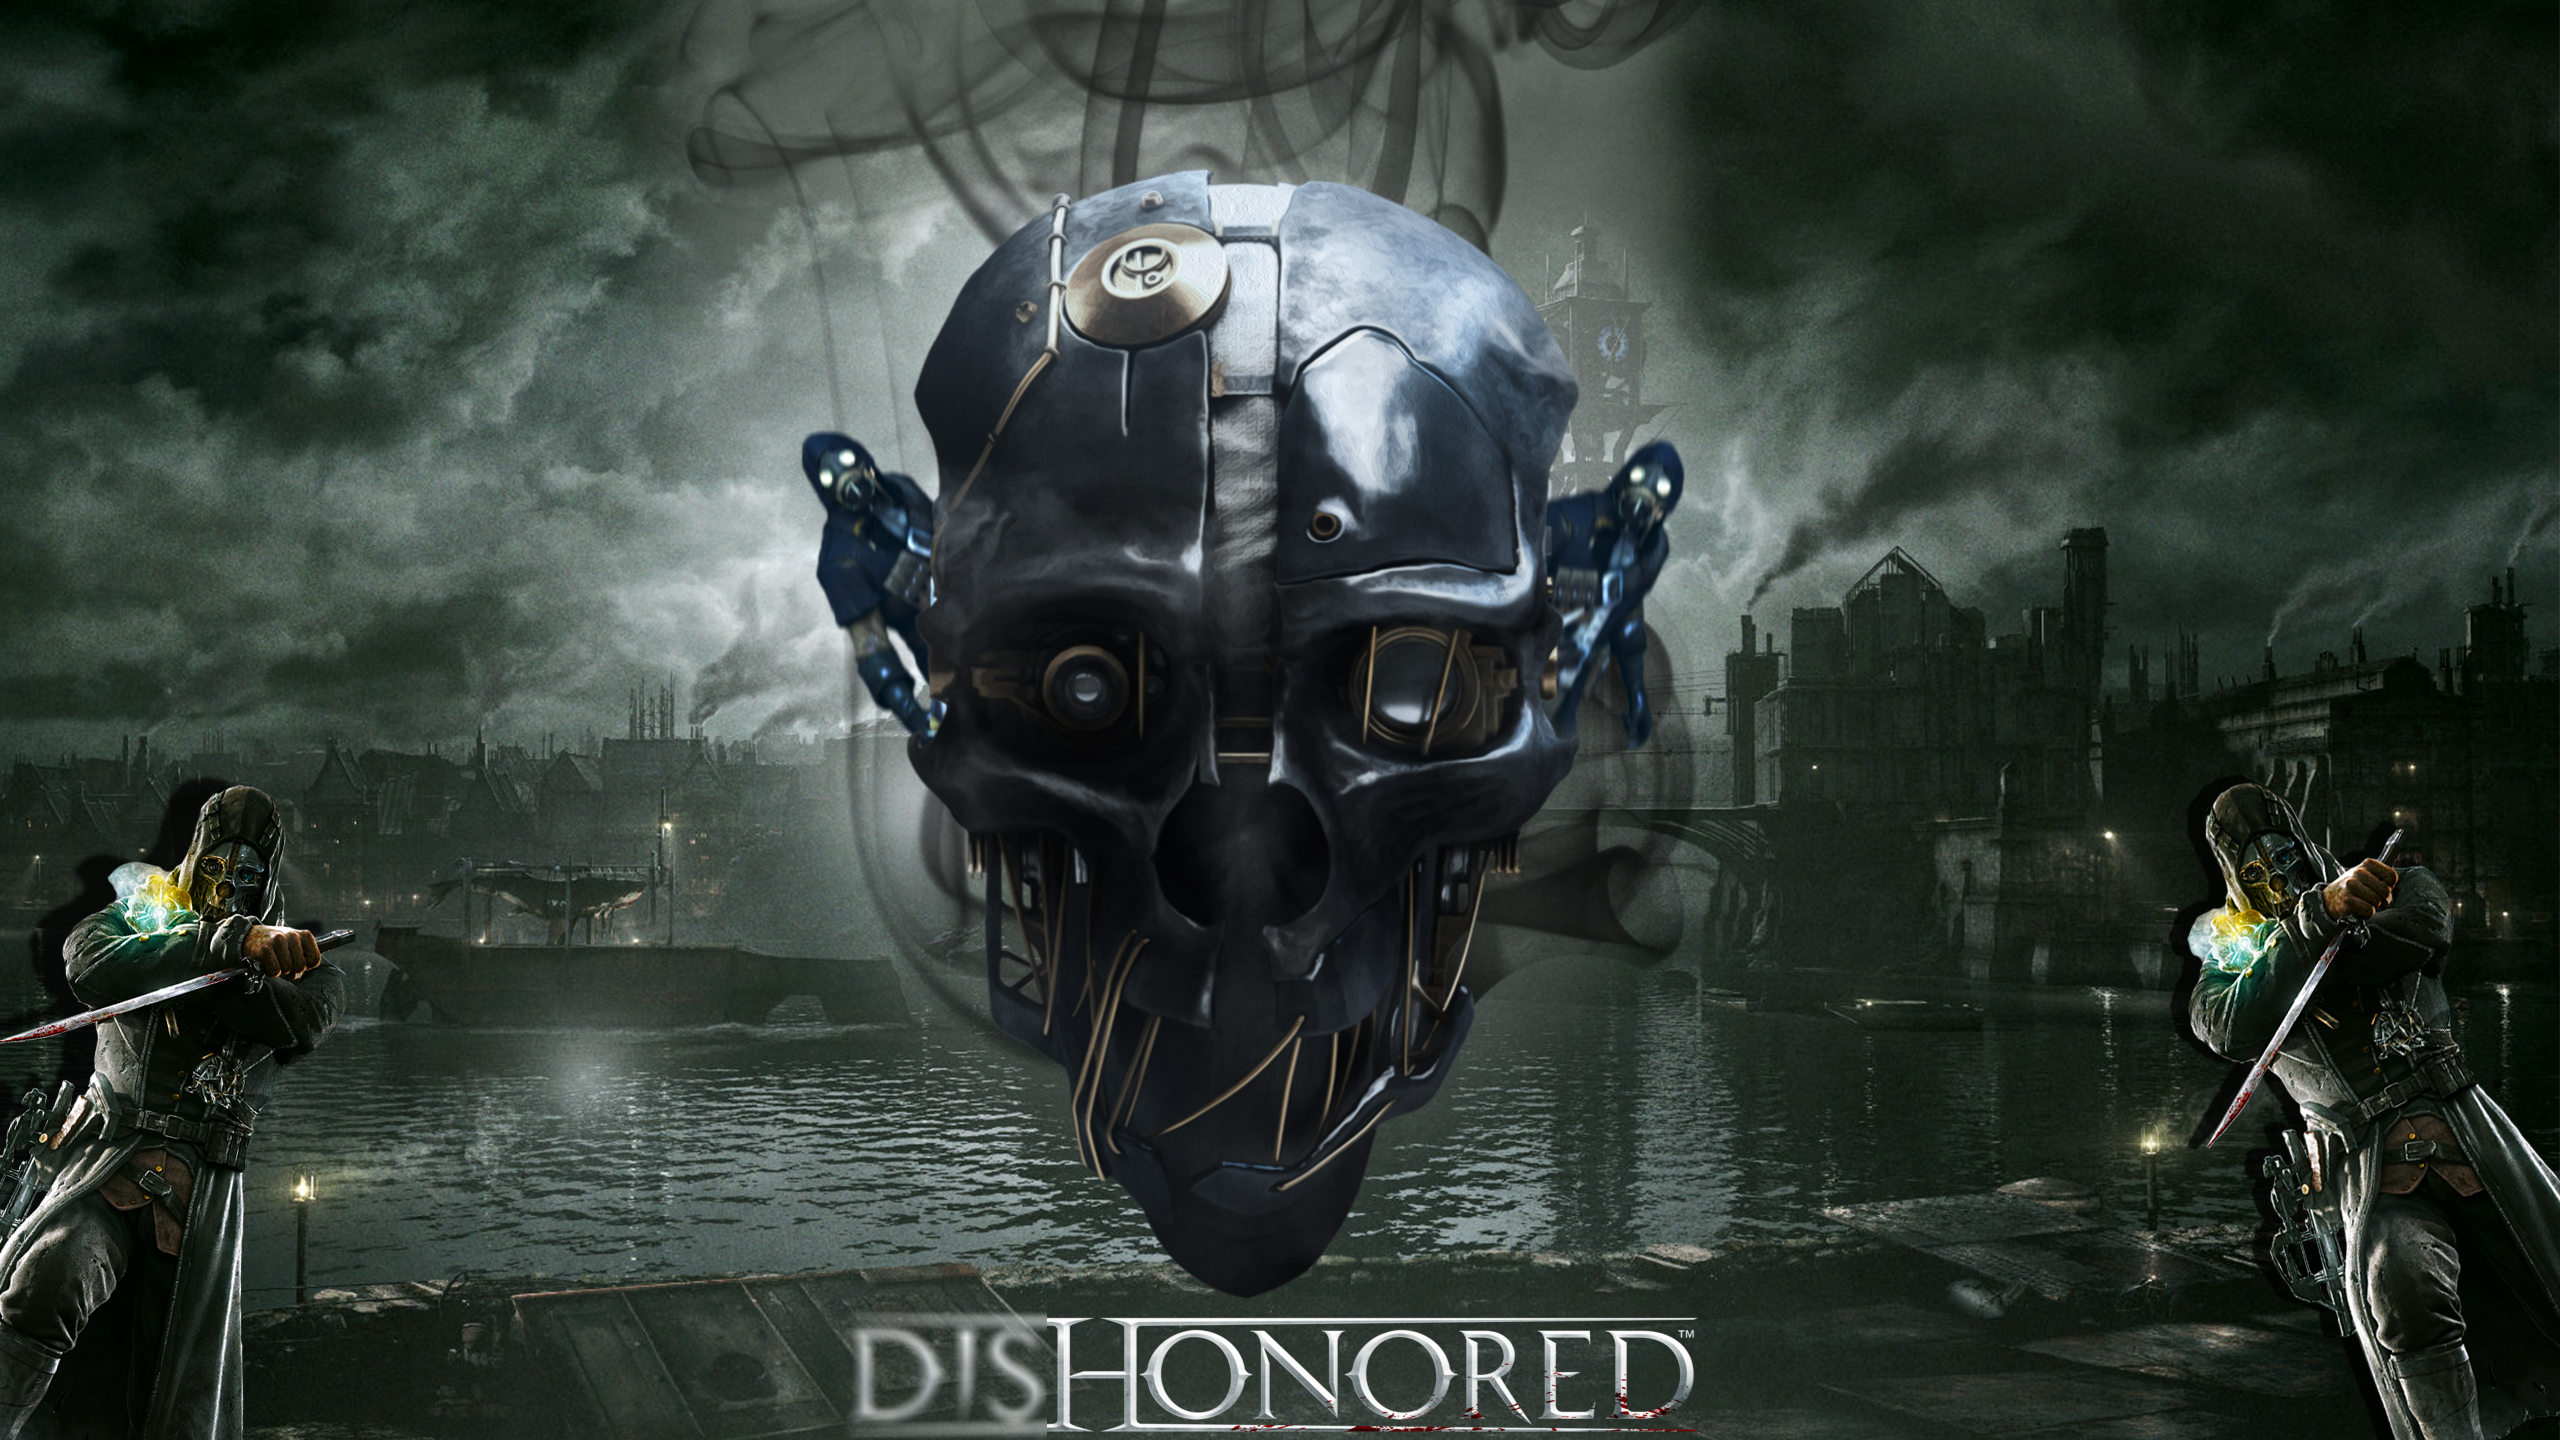 Wallpaper Dishonored By Aishylk On Deviantart